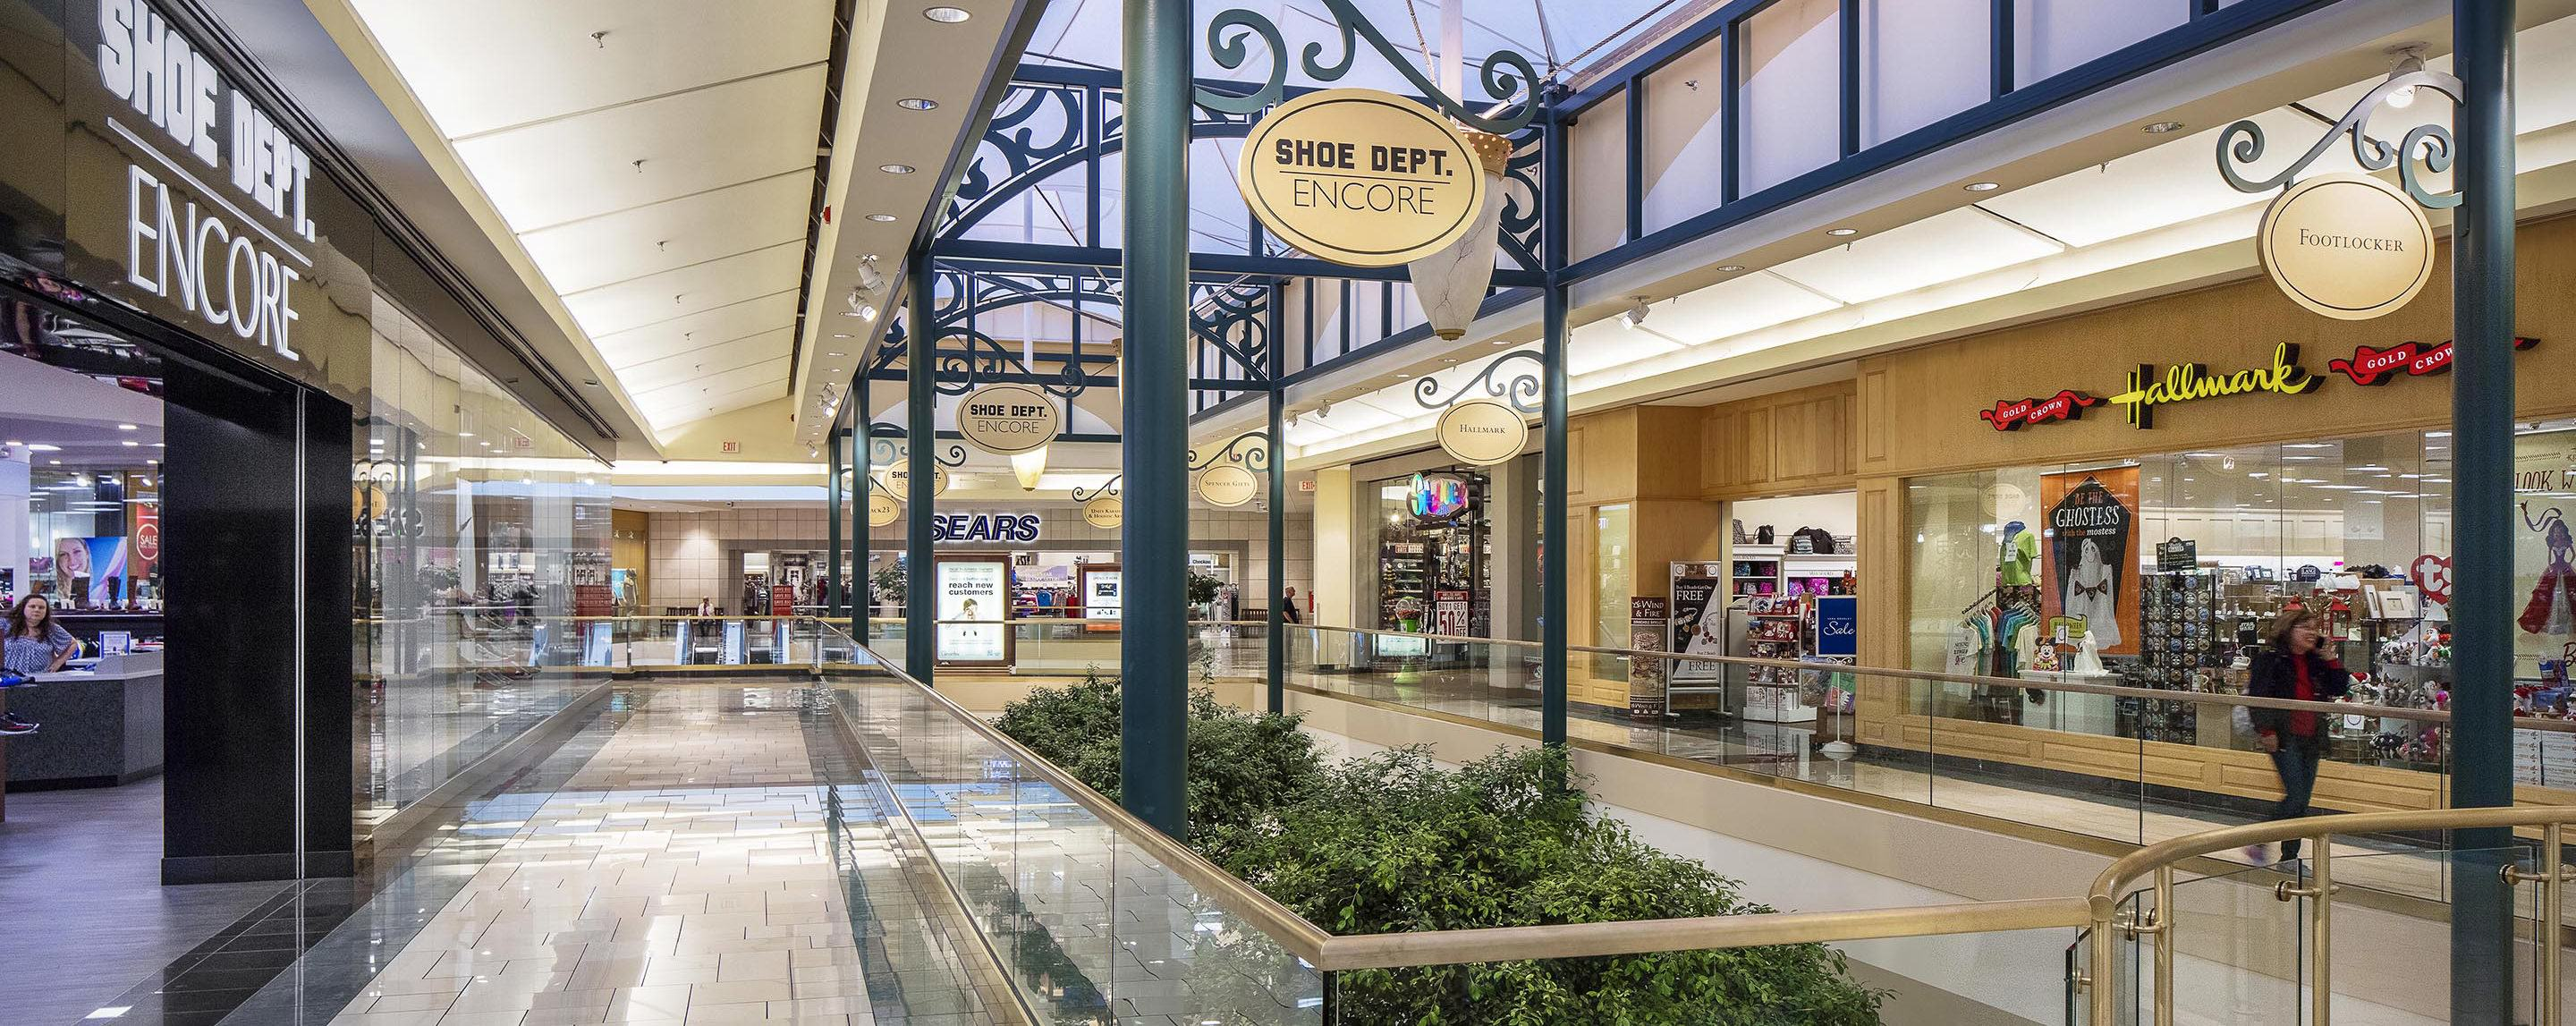 A second floor walkway at the Shoppes at Buckland Hills are lined with store fronts with an open area to look into the trees below.